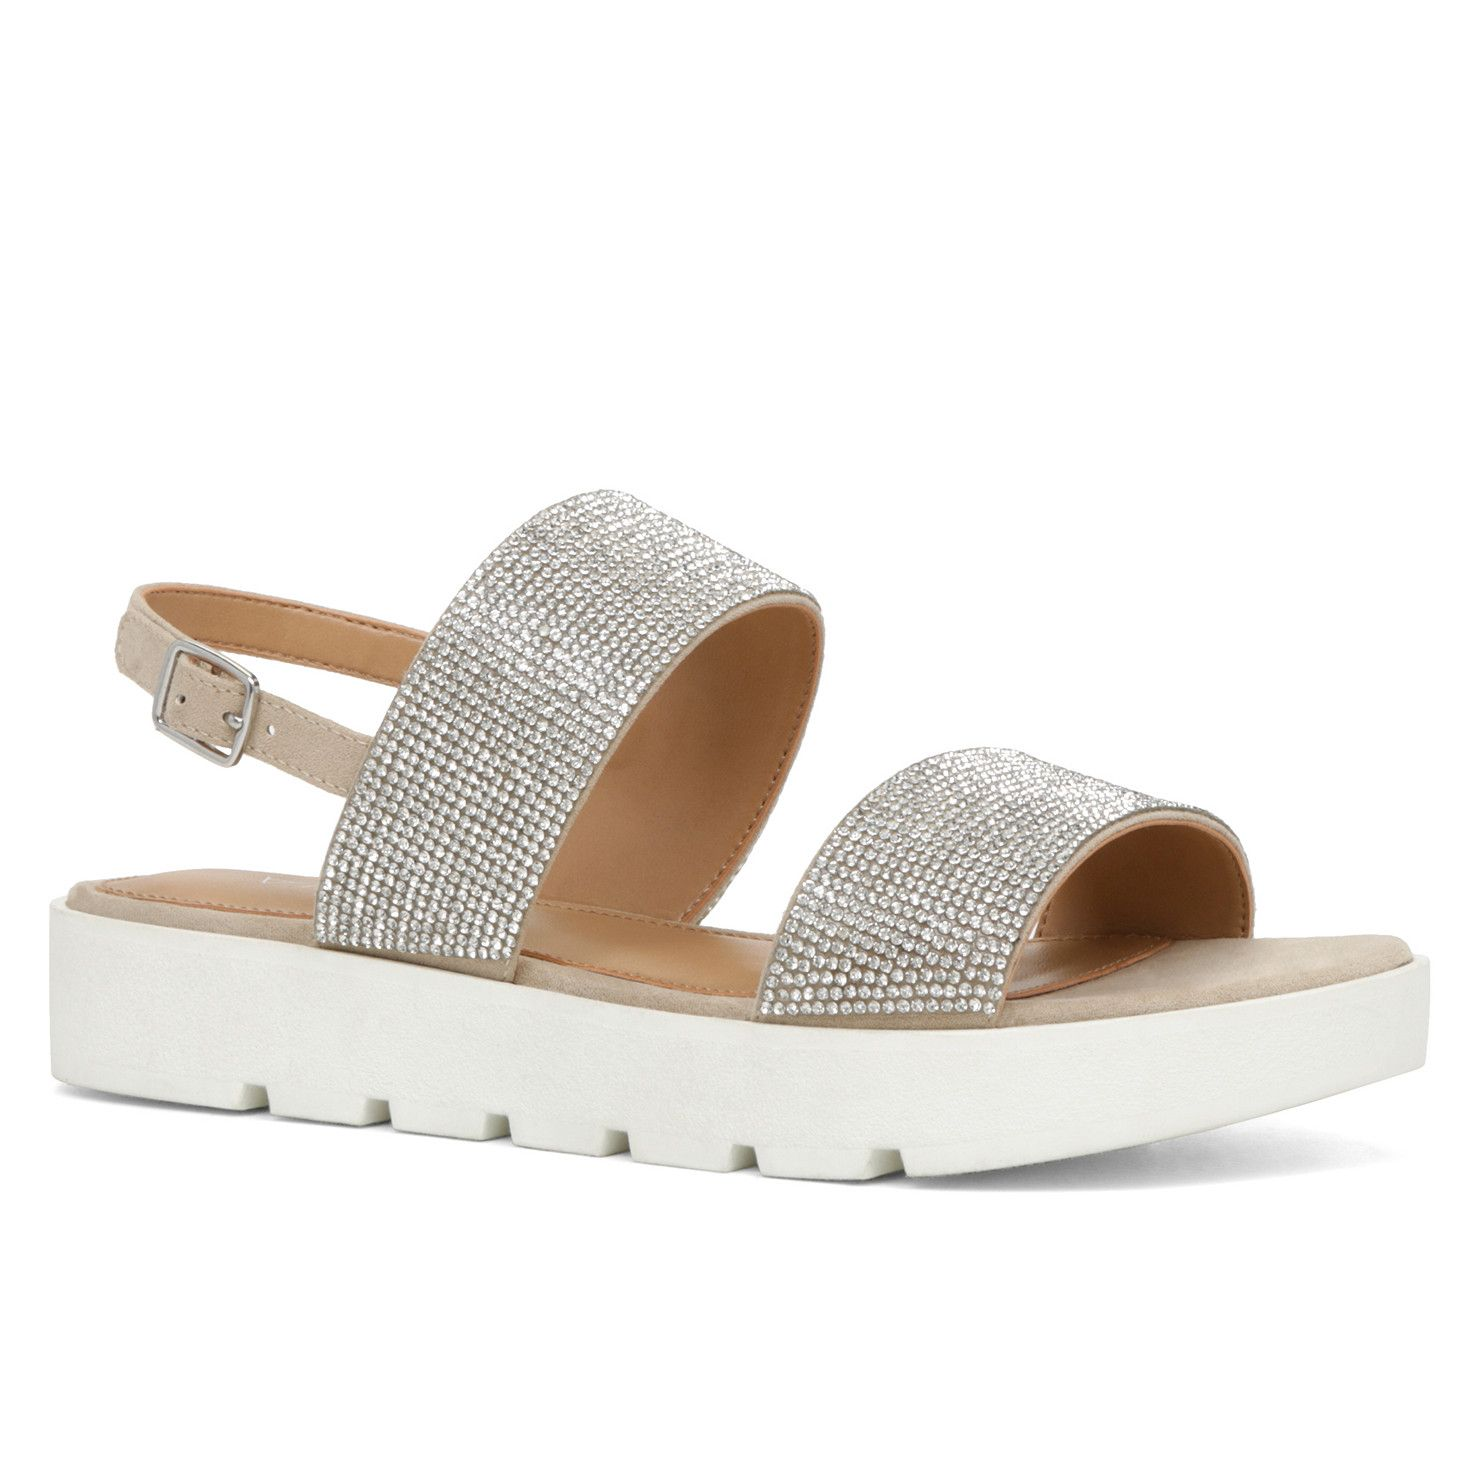 Eowenna Bone Women's Sandals | ALDO US